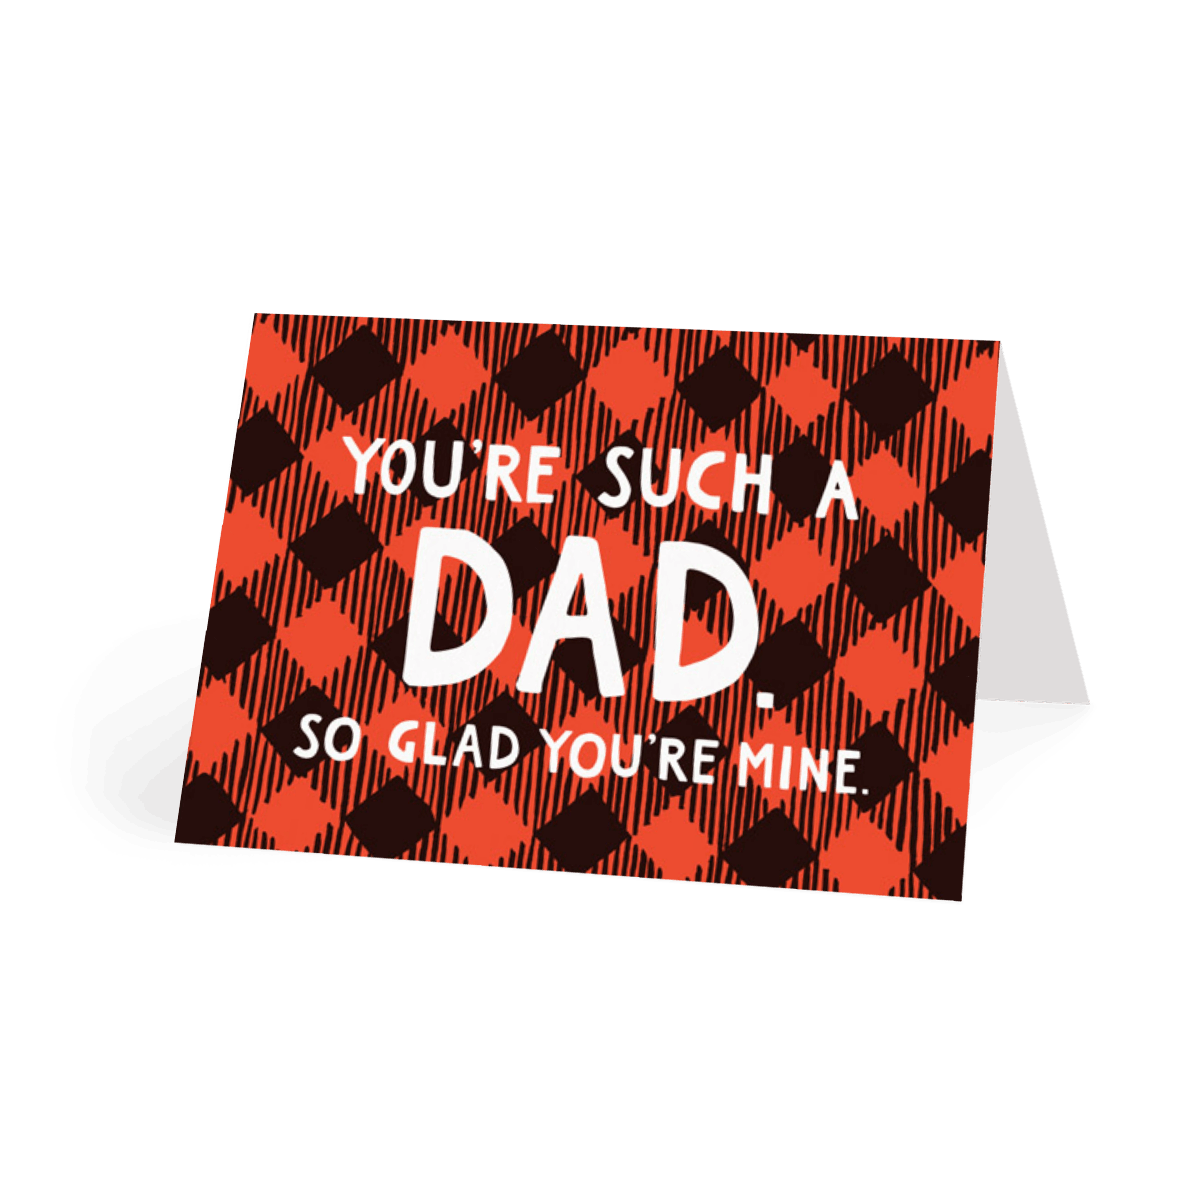 Https%3a%2f%2fwww.papier.com%2fproduct image%2f63027%2f14%2fsuch a dad 14873 front 1581430552.png?ixlib=rb 1.1